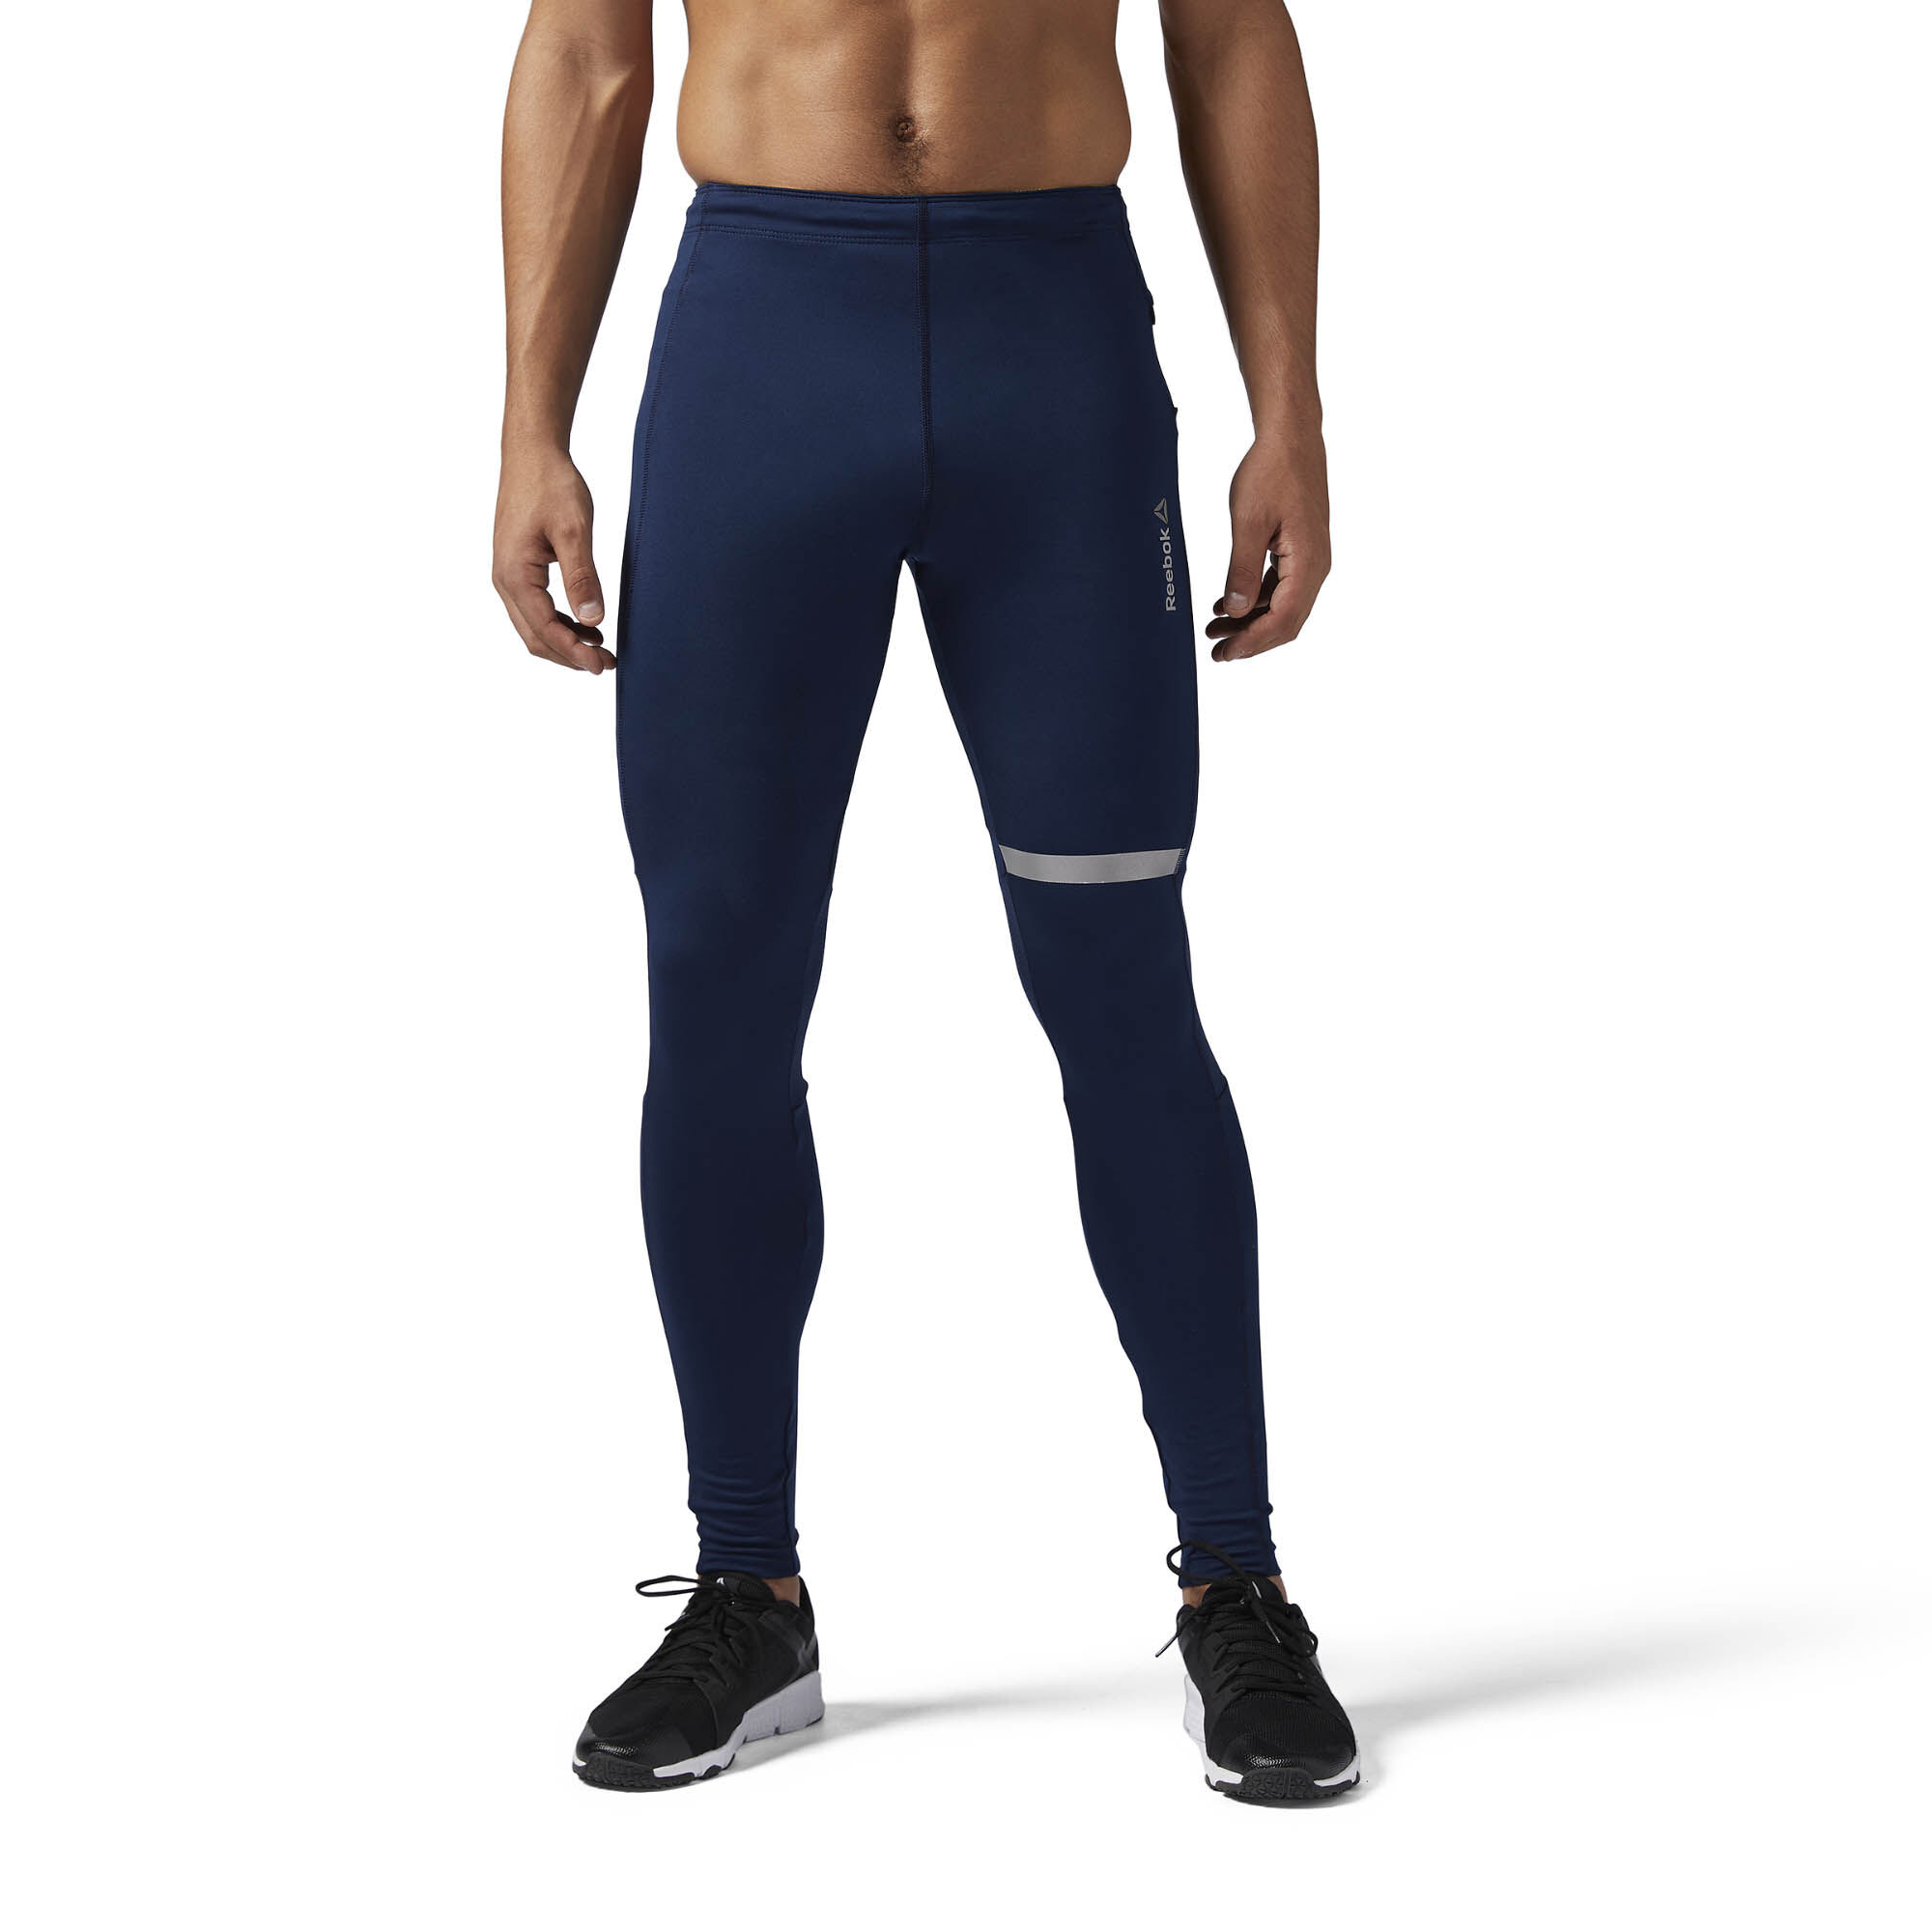 Compare the most helpful customer reviews of the best rated products in our Men's Running Pants & Tights store. These products are shortlisted based on the overall star rating and the number of customer reviews received by each product in the store, and are refreshed regularly.